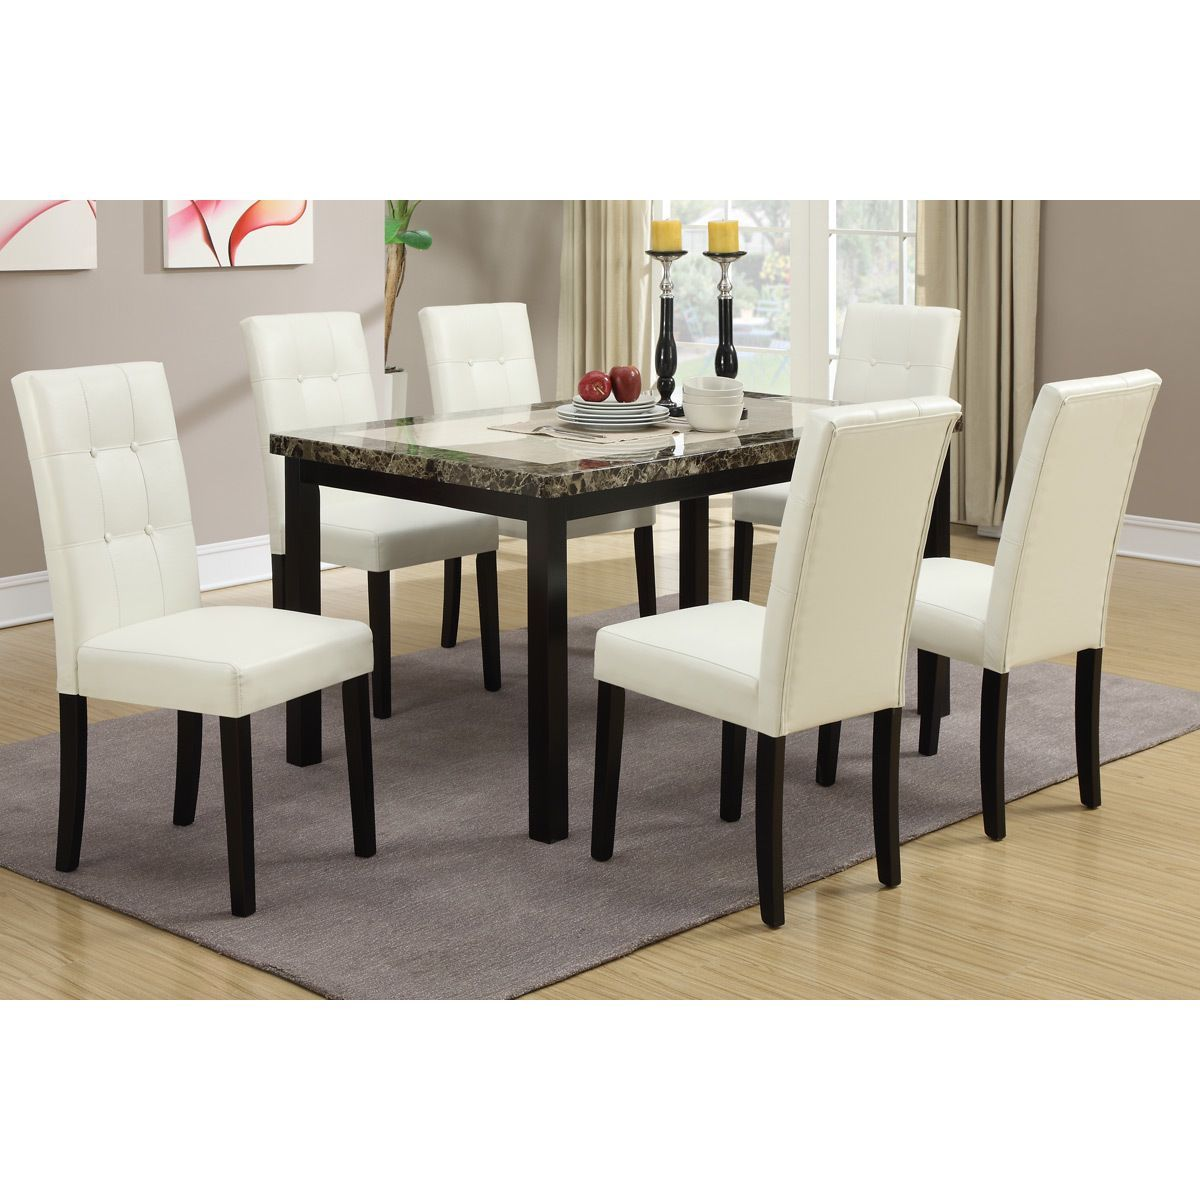 Willow White Cream Dining Chairs Set Of 6 Bonded Leather  Our Magnificent Cream Dining Room Furniture Review